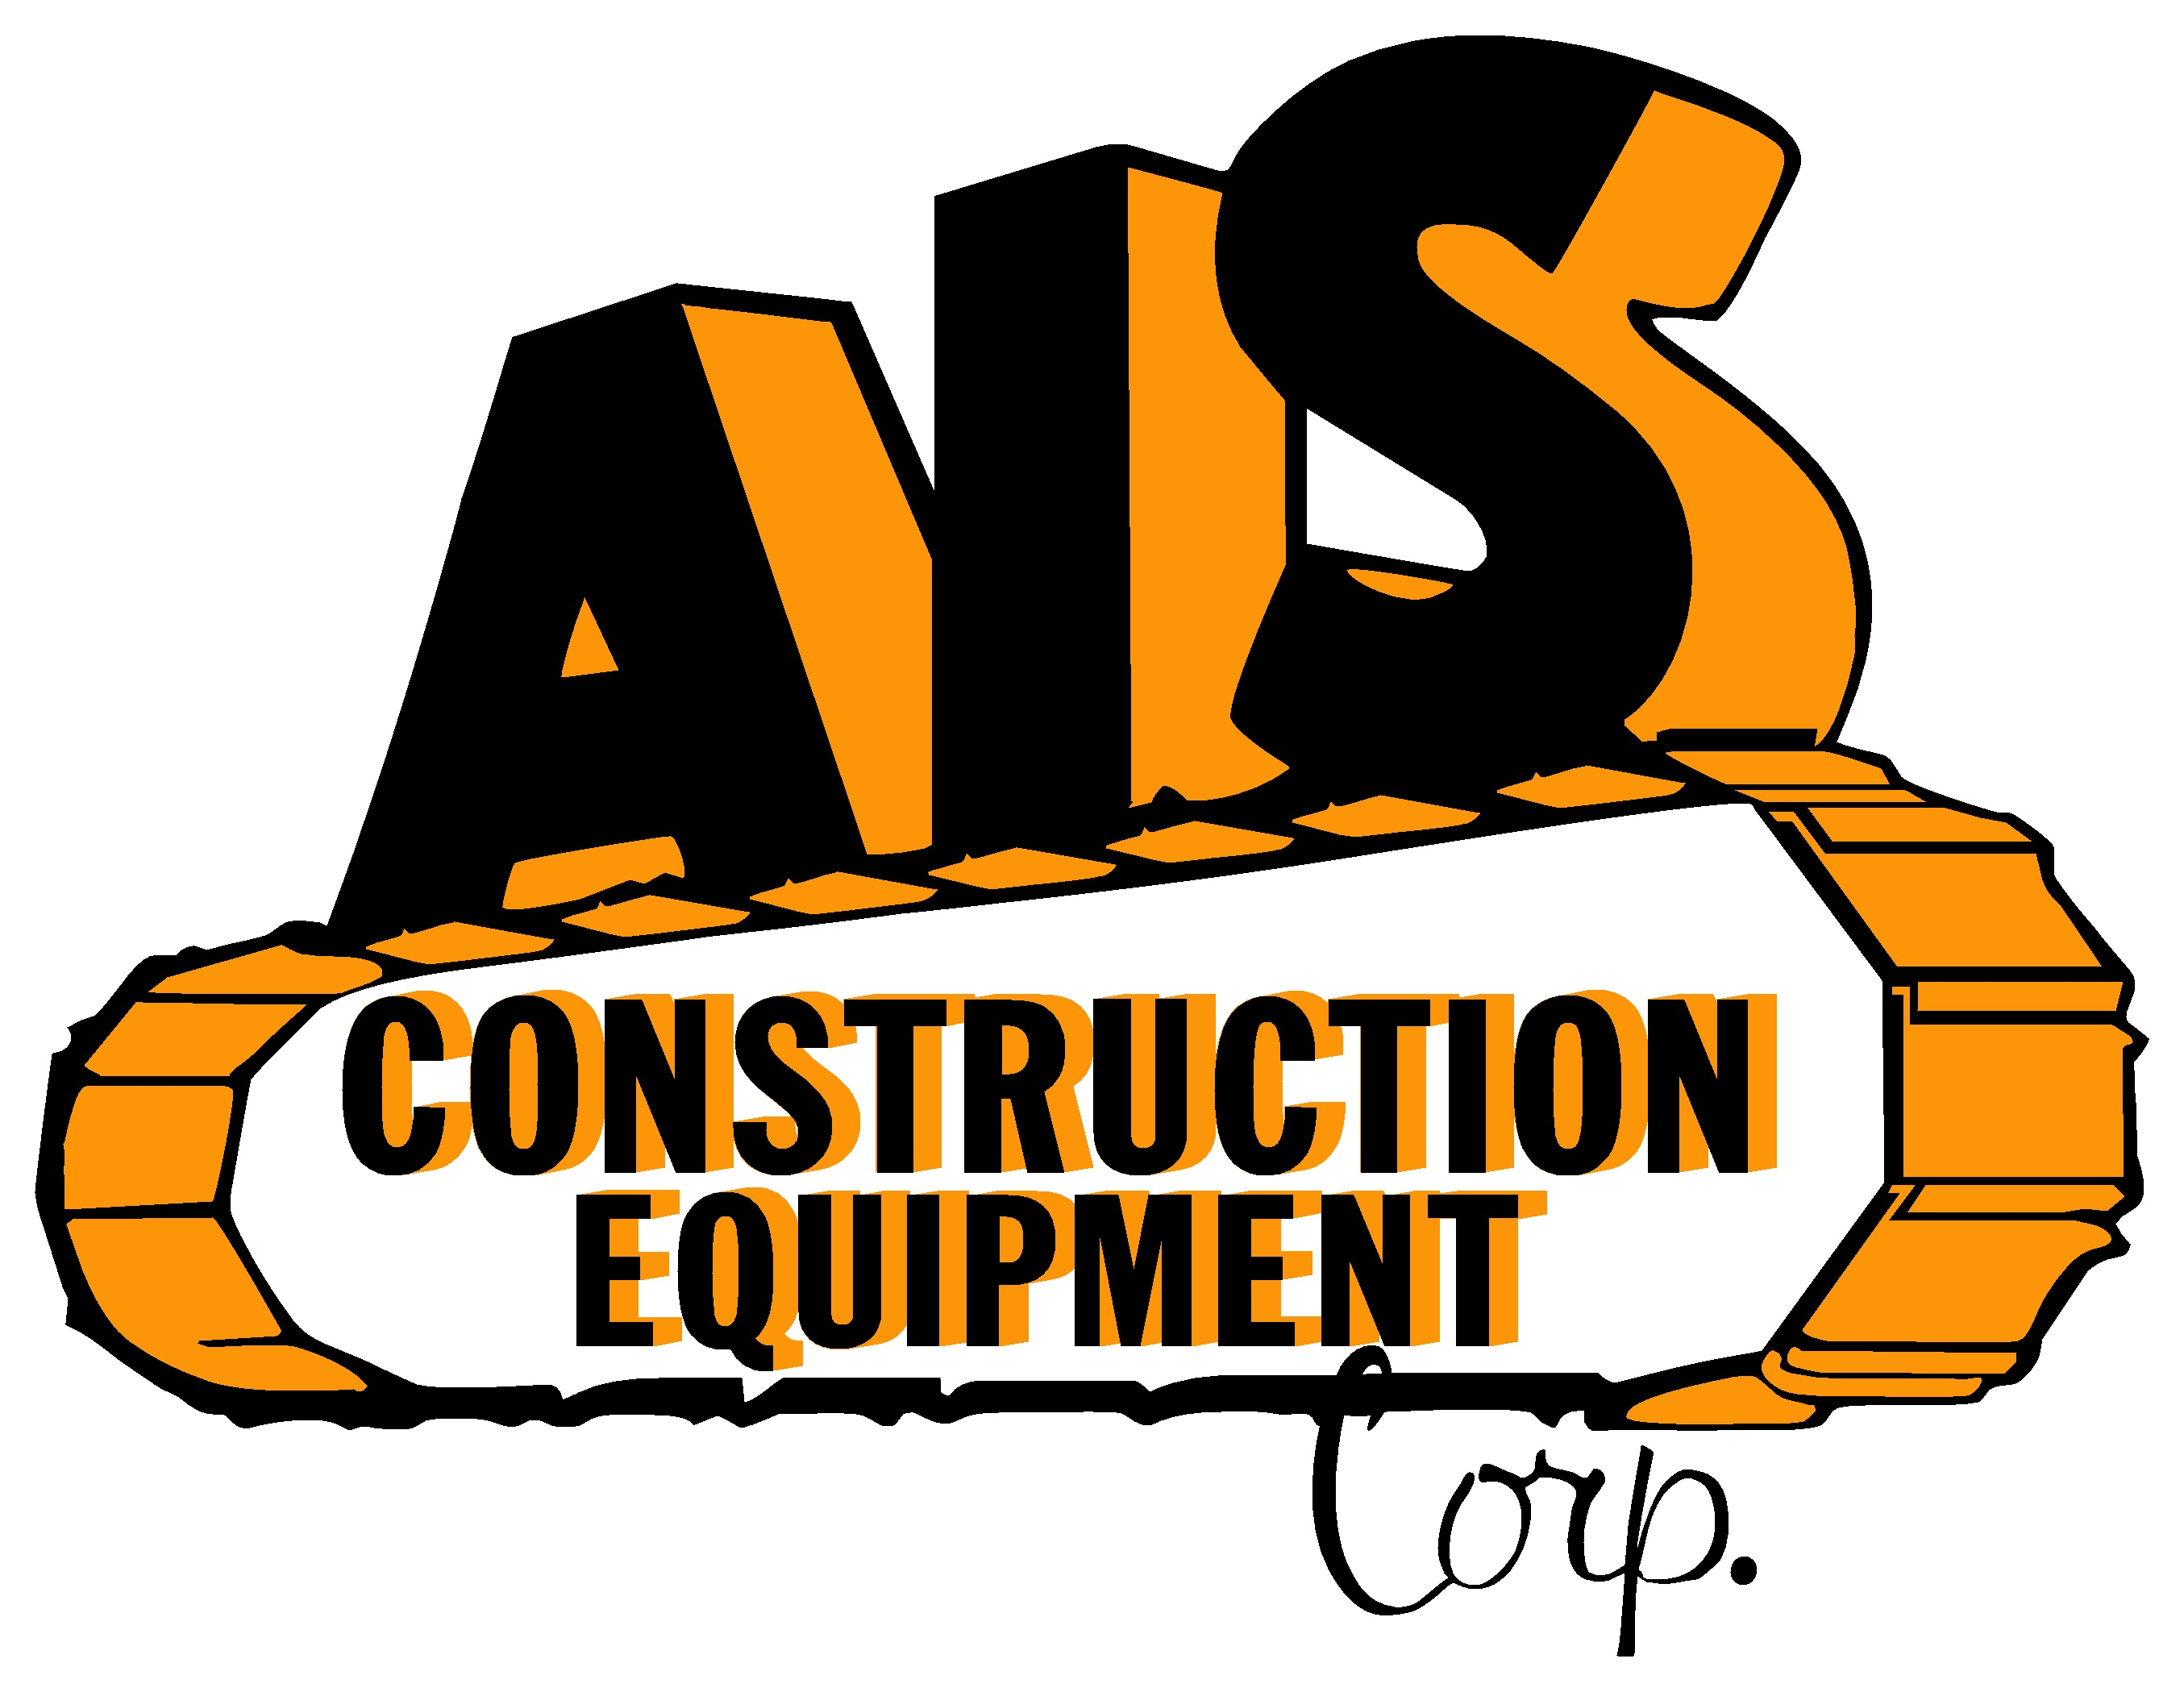 AIS Construction Equipment Corp.